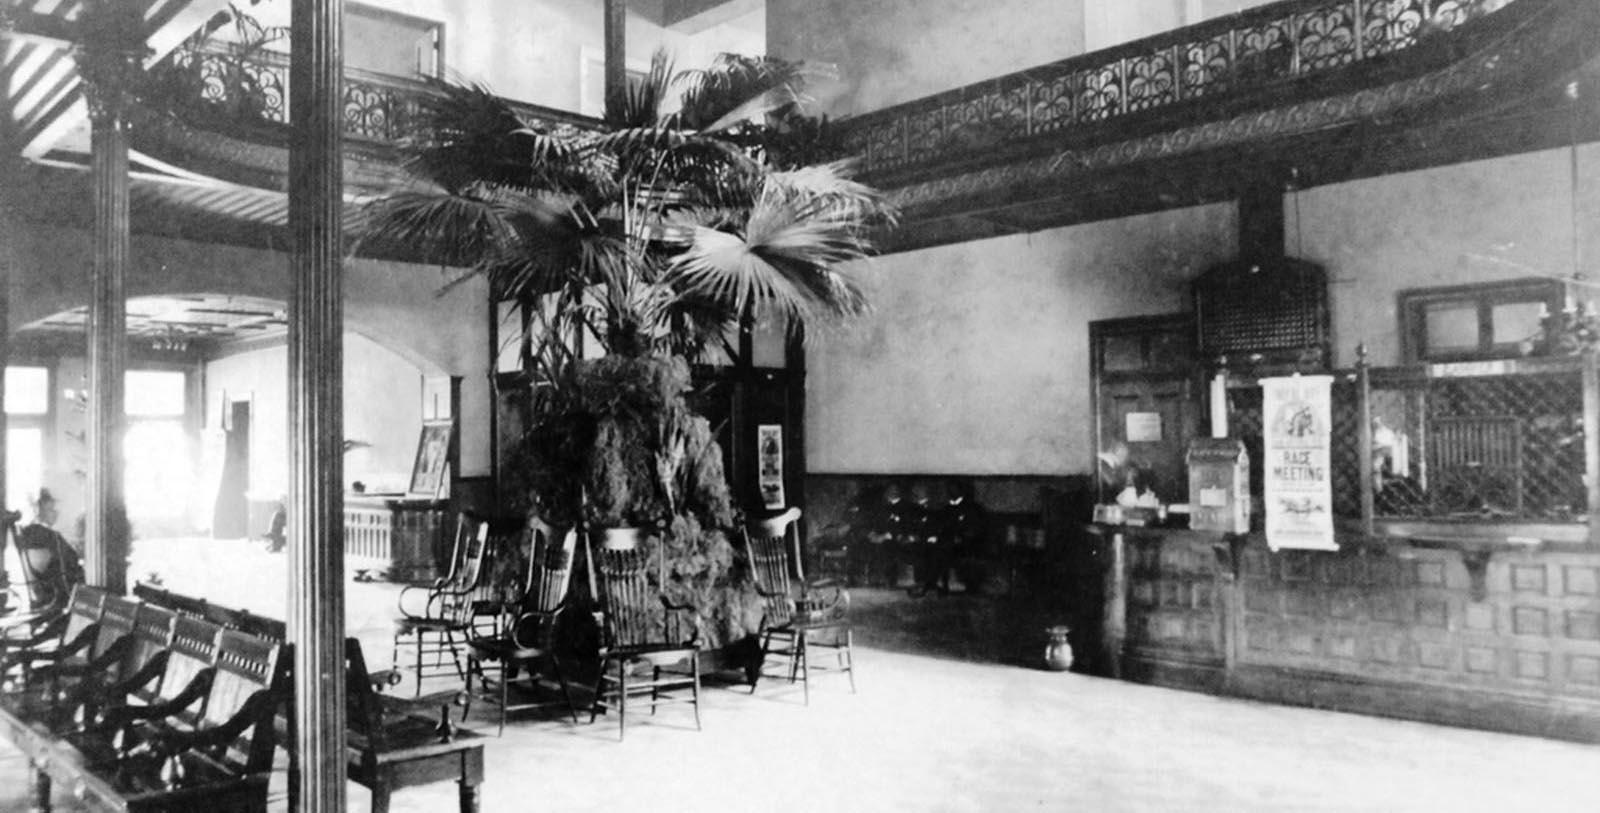 Historic Image of Hotel Lobby at The Menger Hotel, 1859, Member of Historic Hotels of America, in San Antonio, Texas, Discover